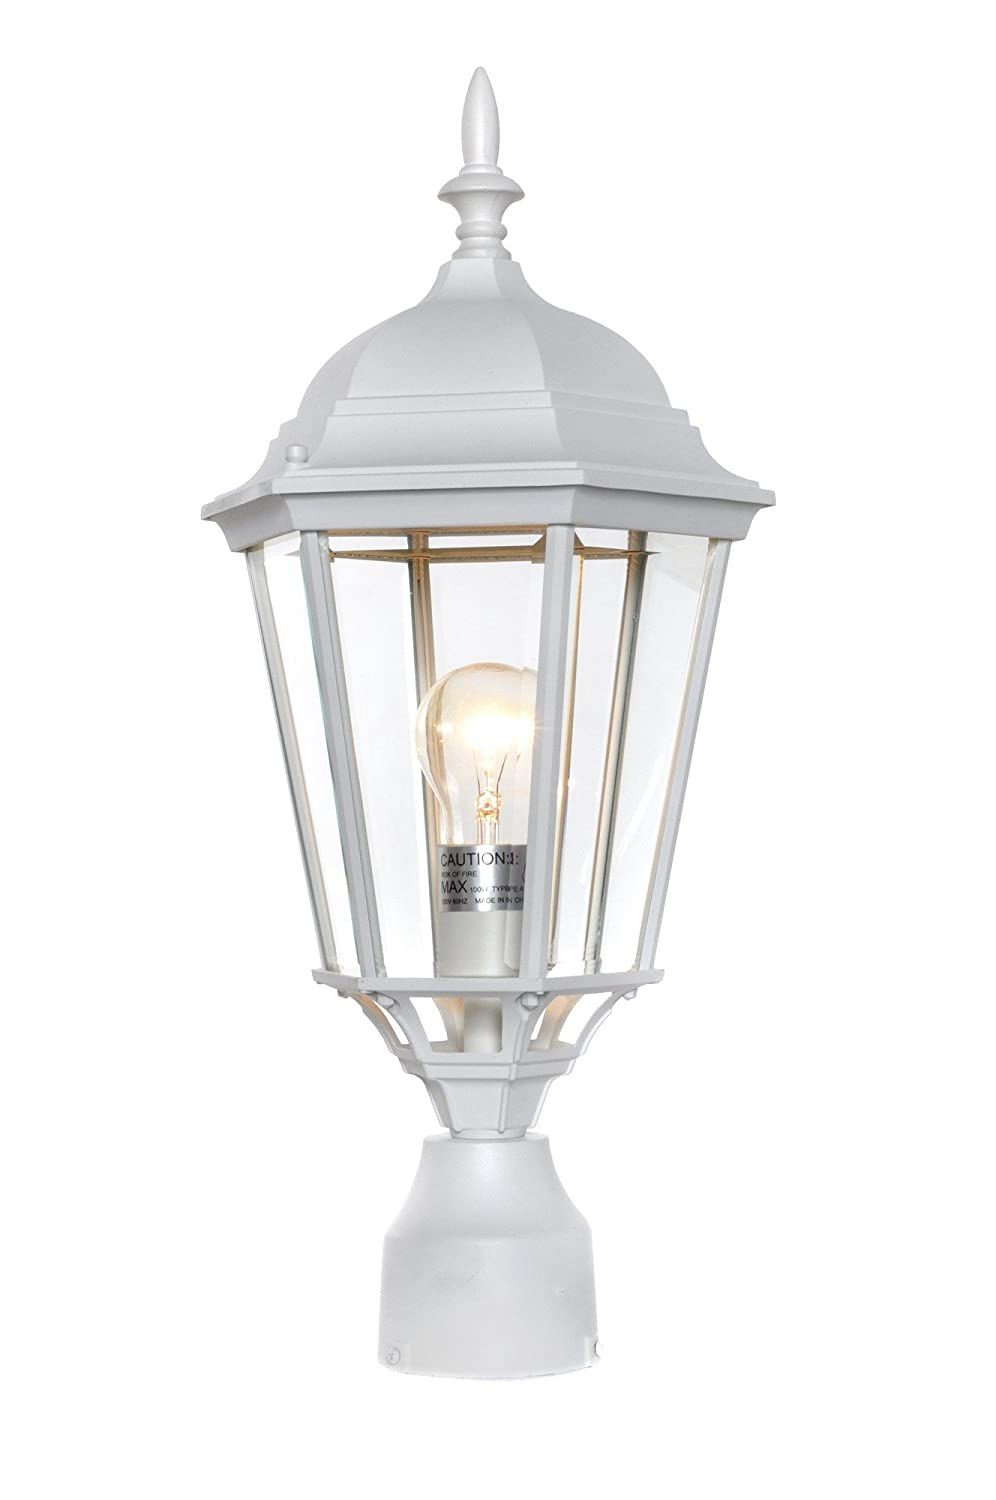 Maxim 1005EB, Westlake Cast,1-Light Outdoor Pole/Post Lantern, Empire Bronze Maxim Lighting